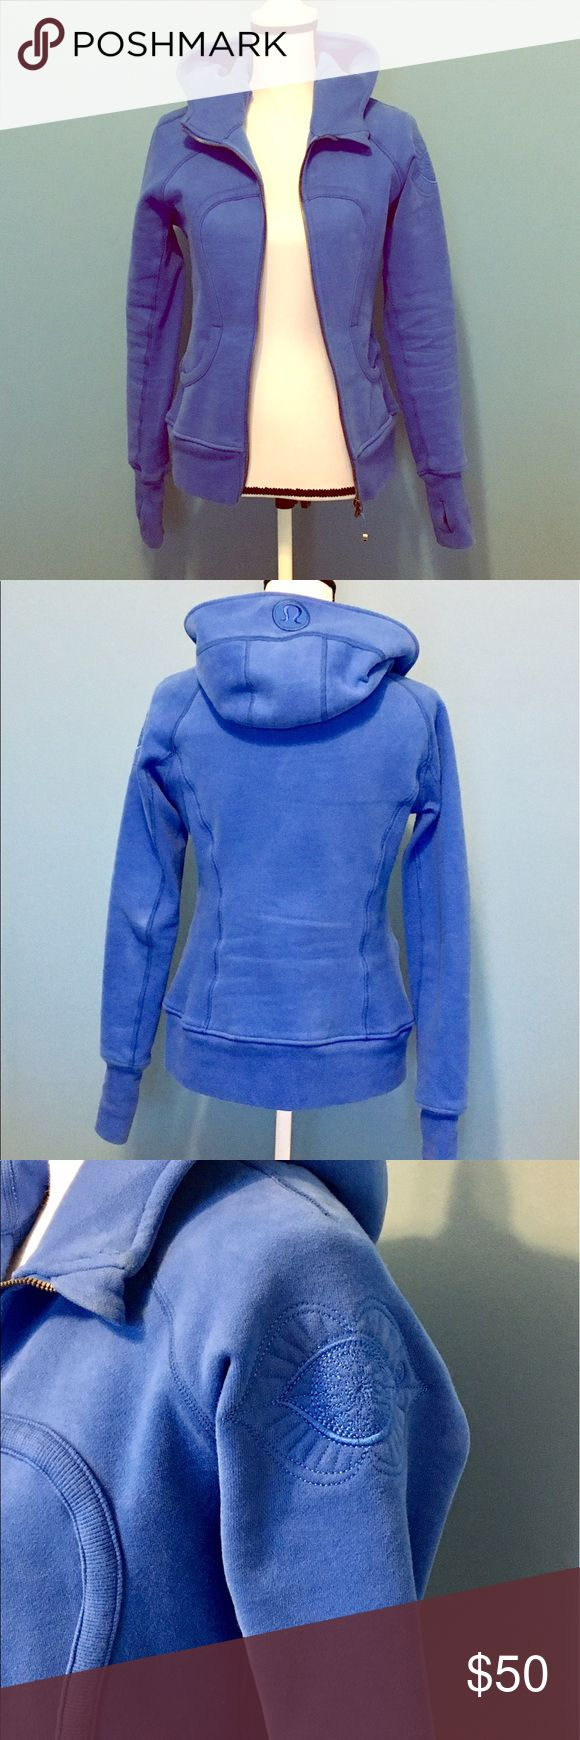 Lululemon Scuba Hoodie Barely worn Blue Scuba Hoodie in size 6. In great condition still. lululemon athletica Tops Sweatshirts & Hoodies